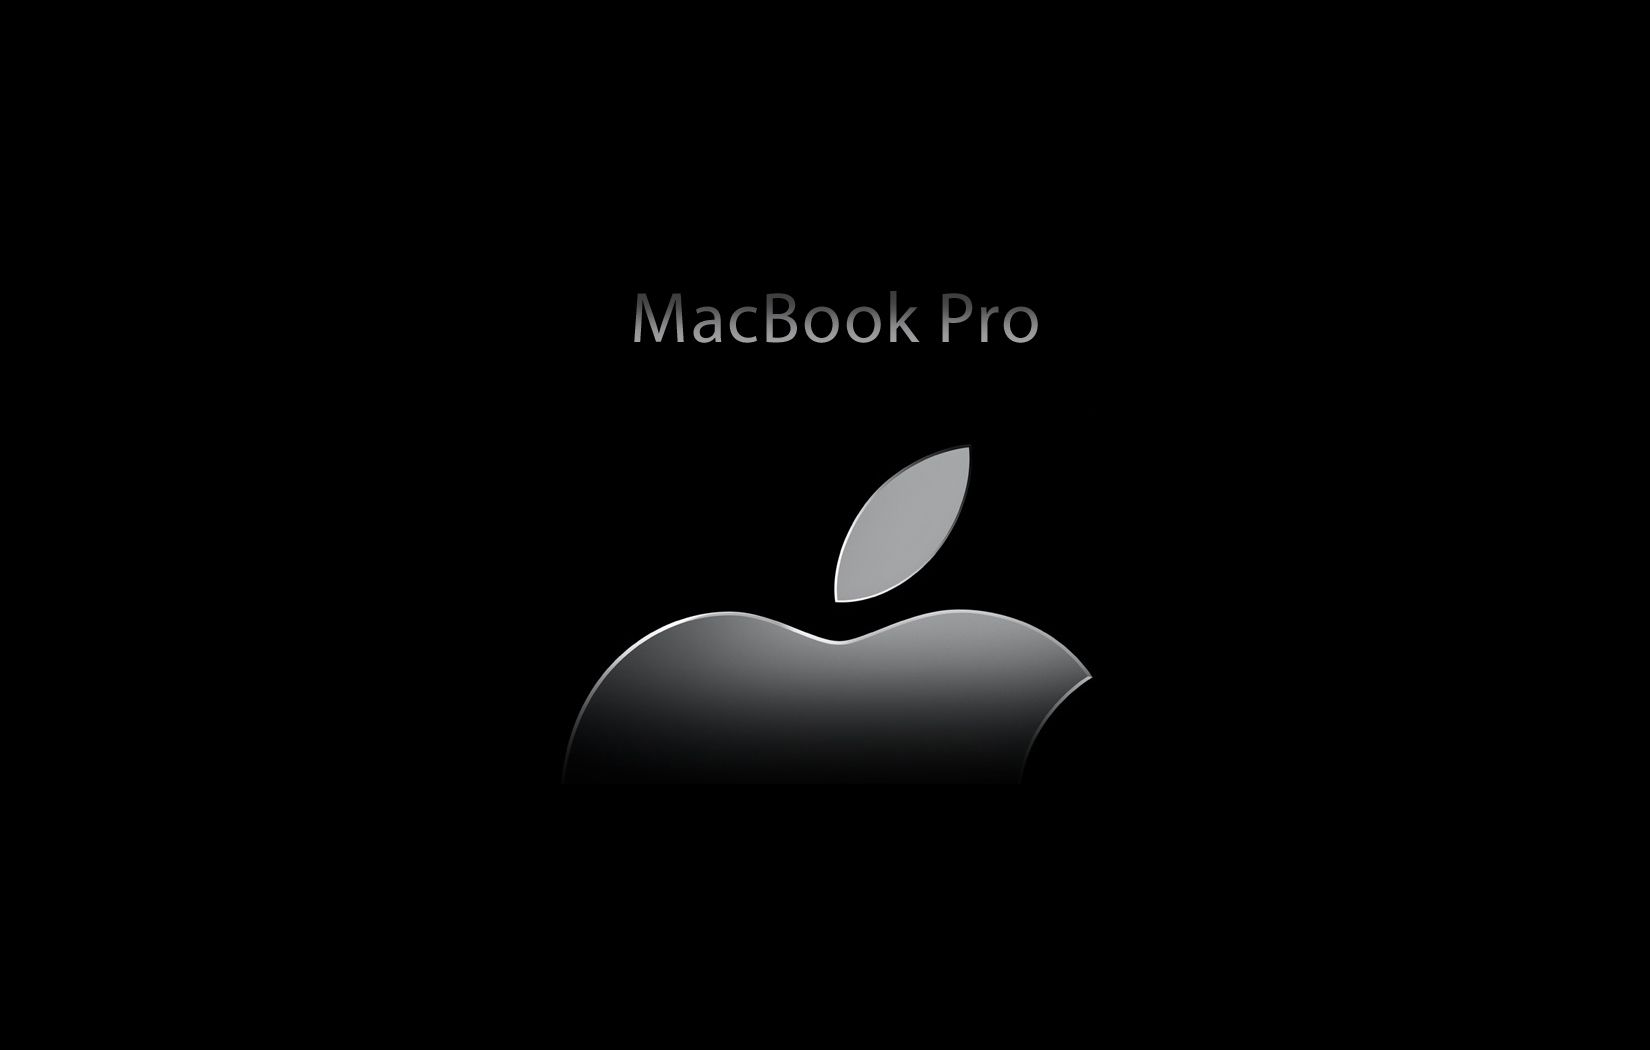 apple macbook pro black wallpaper [1650x1050]